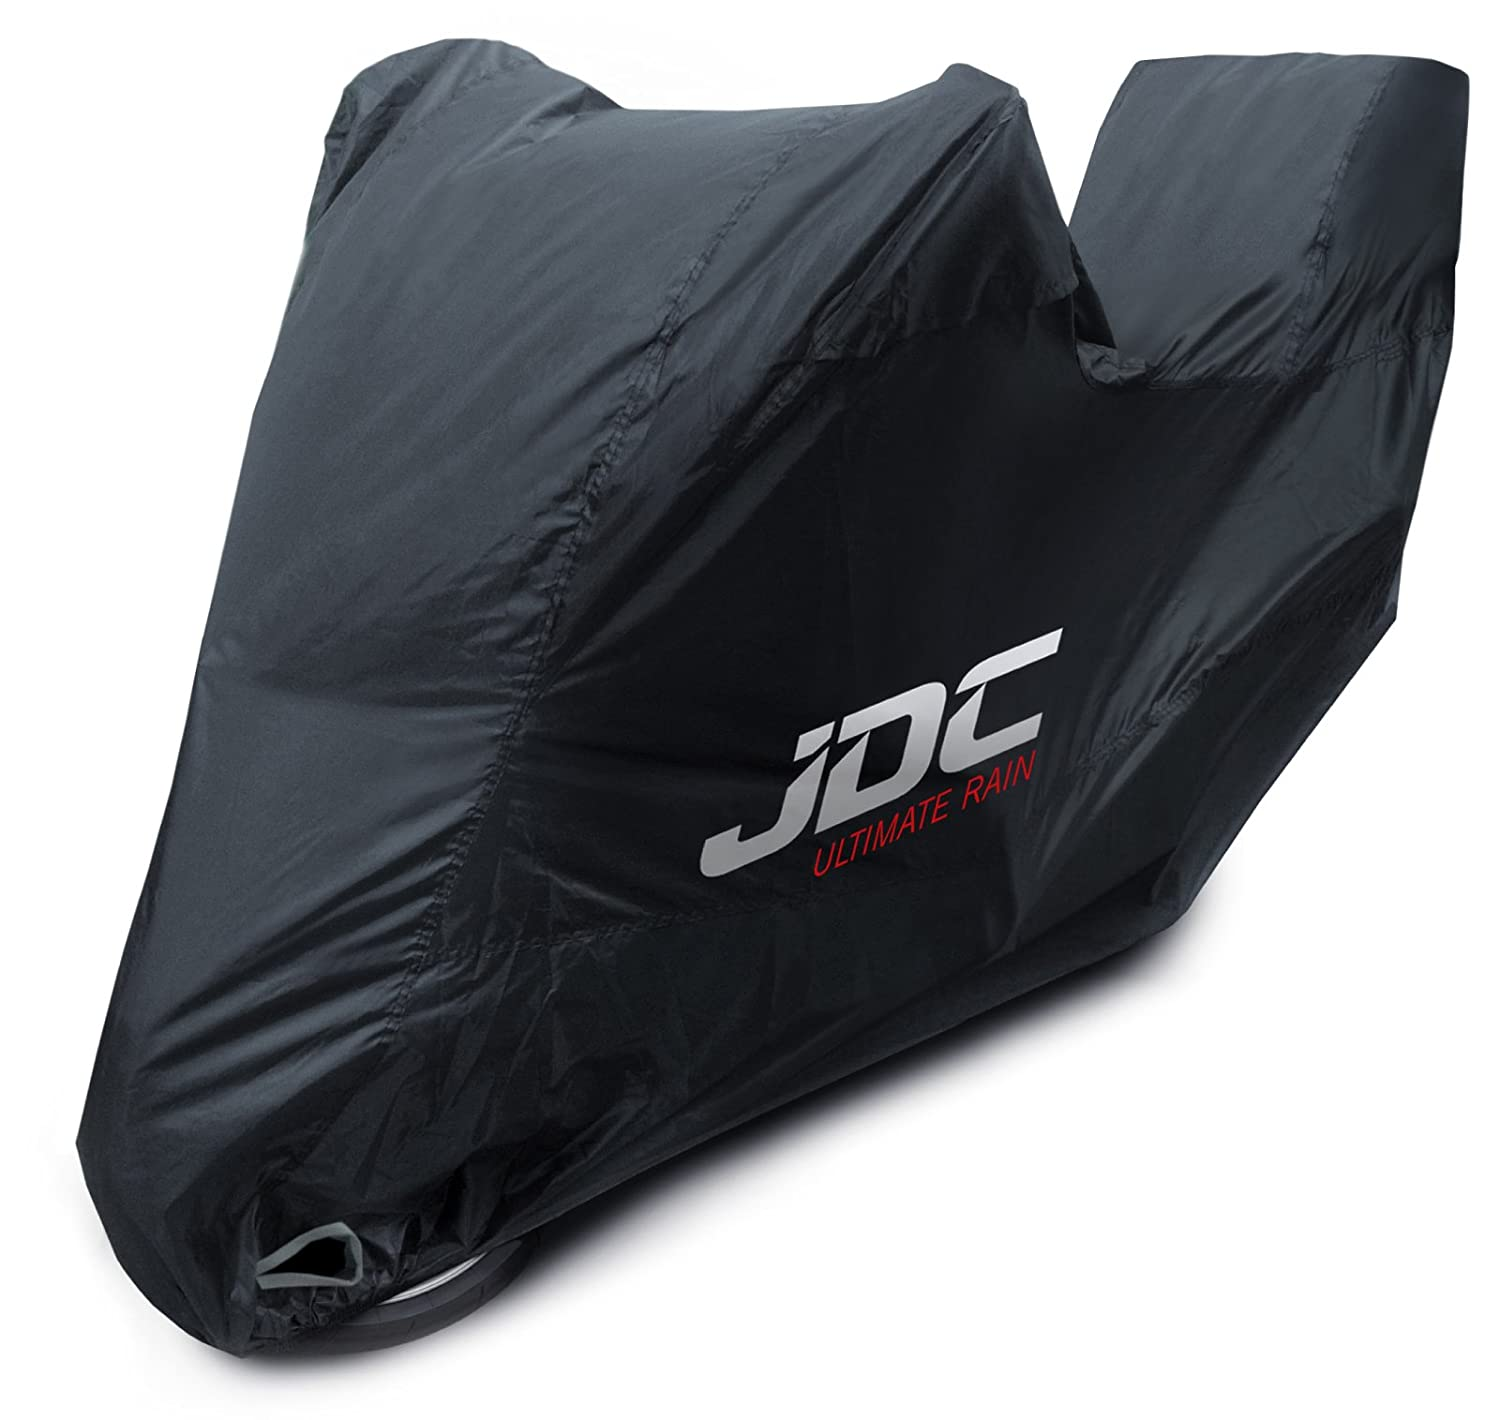 JDC Motorcycle 100% Waterproof Cover - ULTIMATE RAIN (Heavy Duty, Soft Lining, Heat Resistant Panels, Taped Seams) - XXL